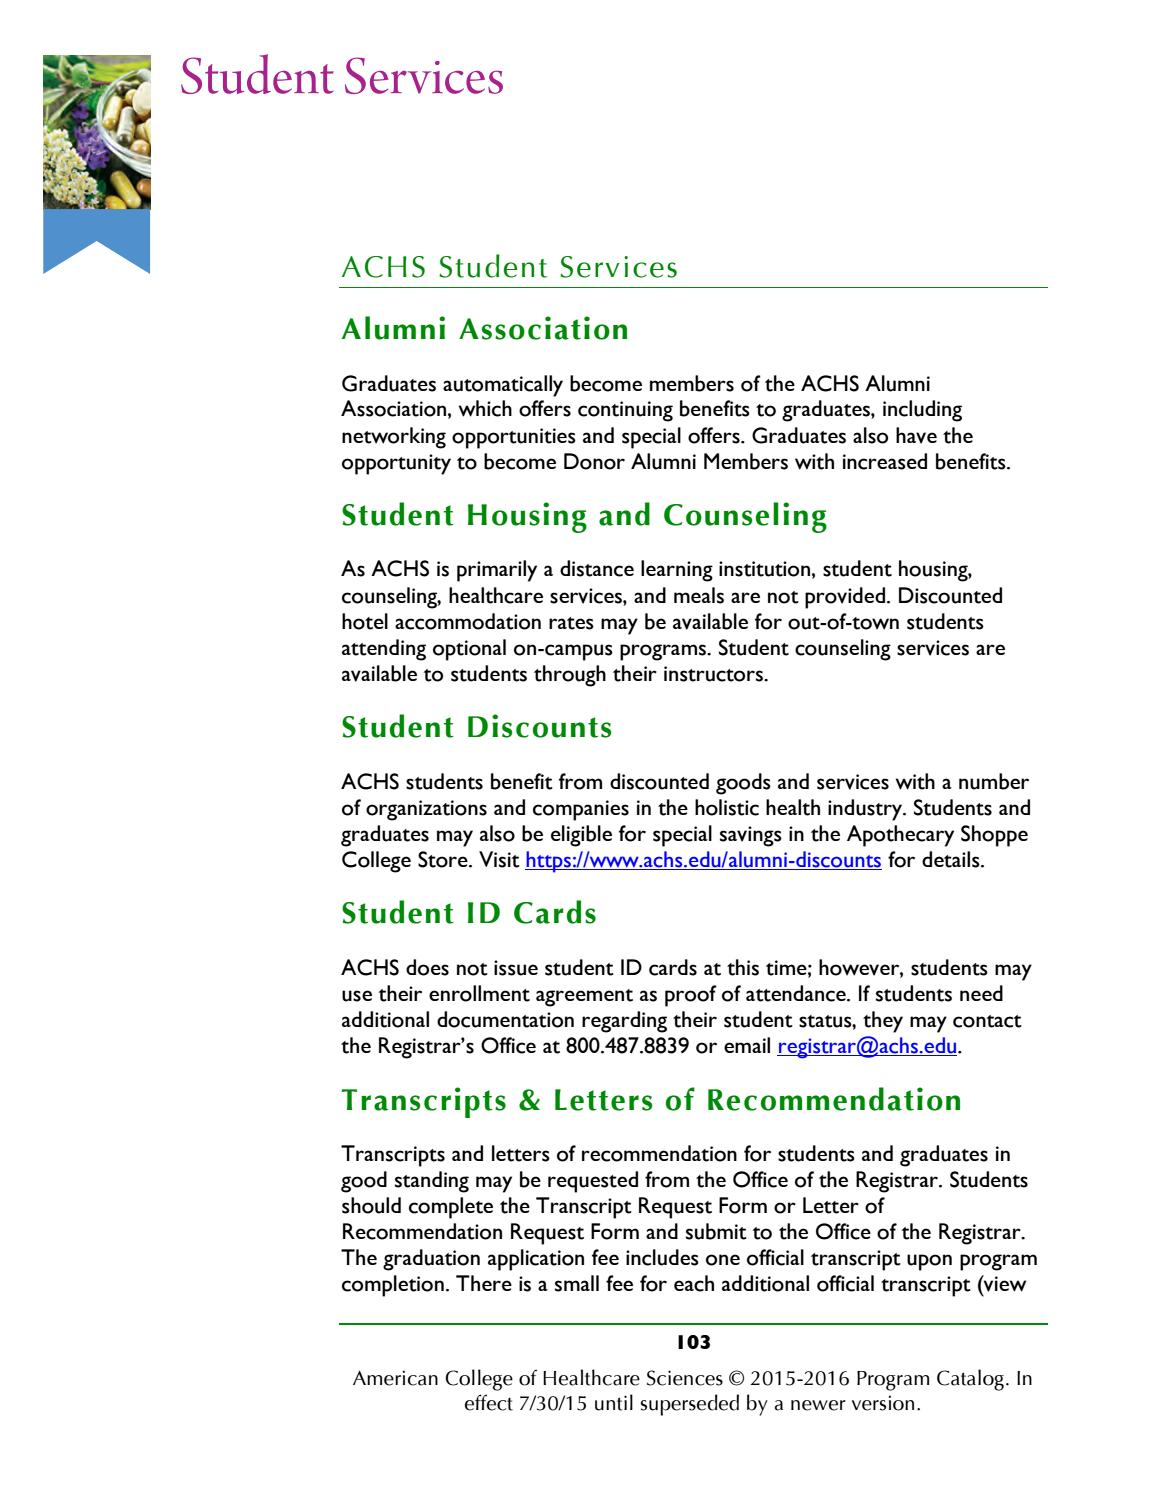 Achs Program Catalog 1516 Academic Year By American College Of